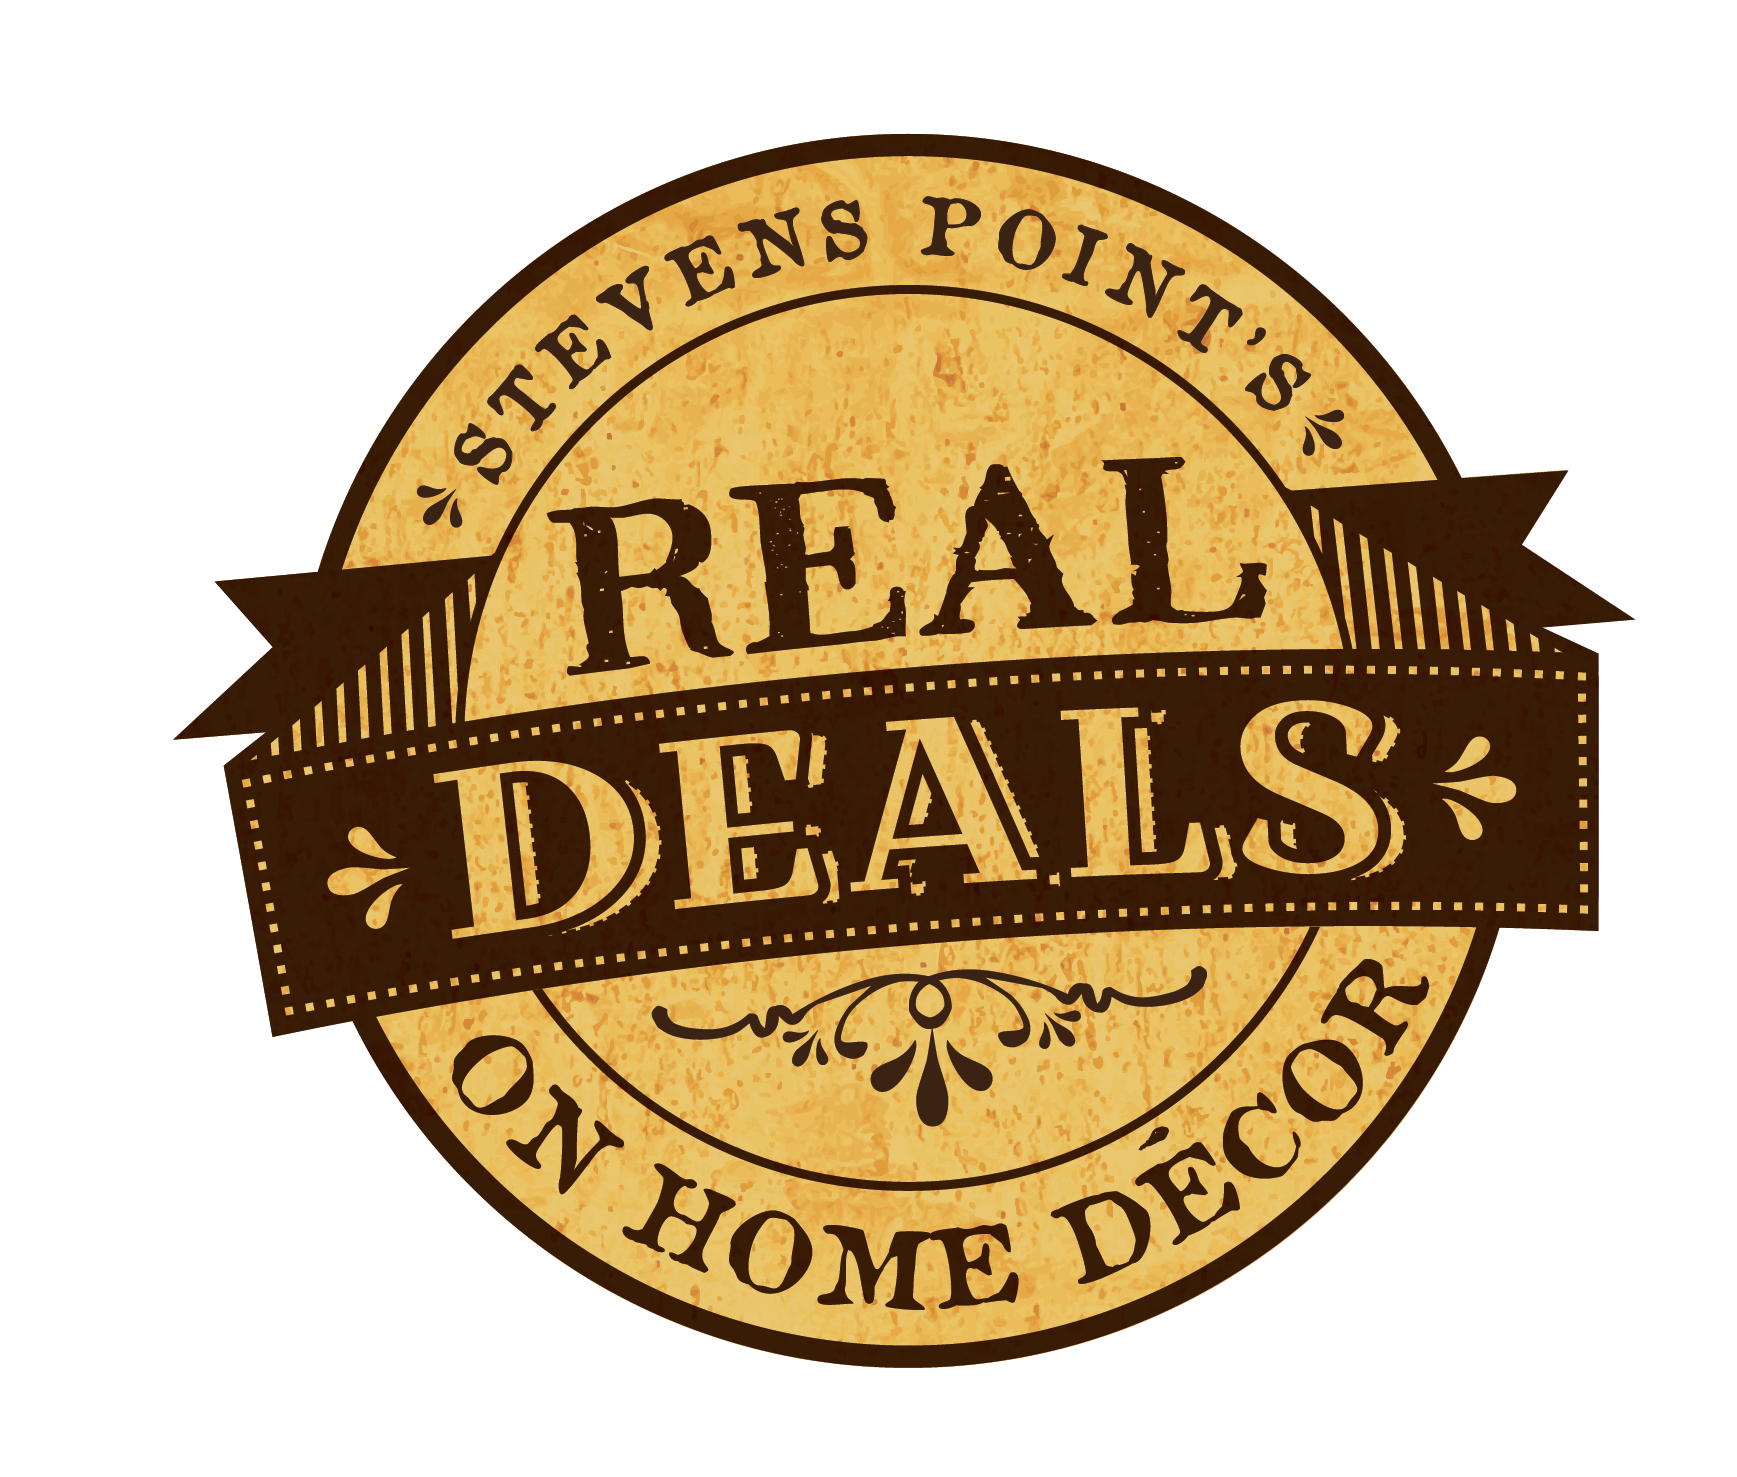 Real Deals On Home Decor, Stevens Point, WI